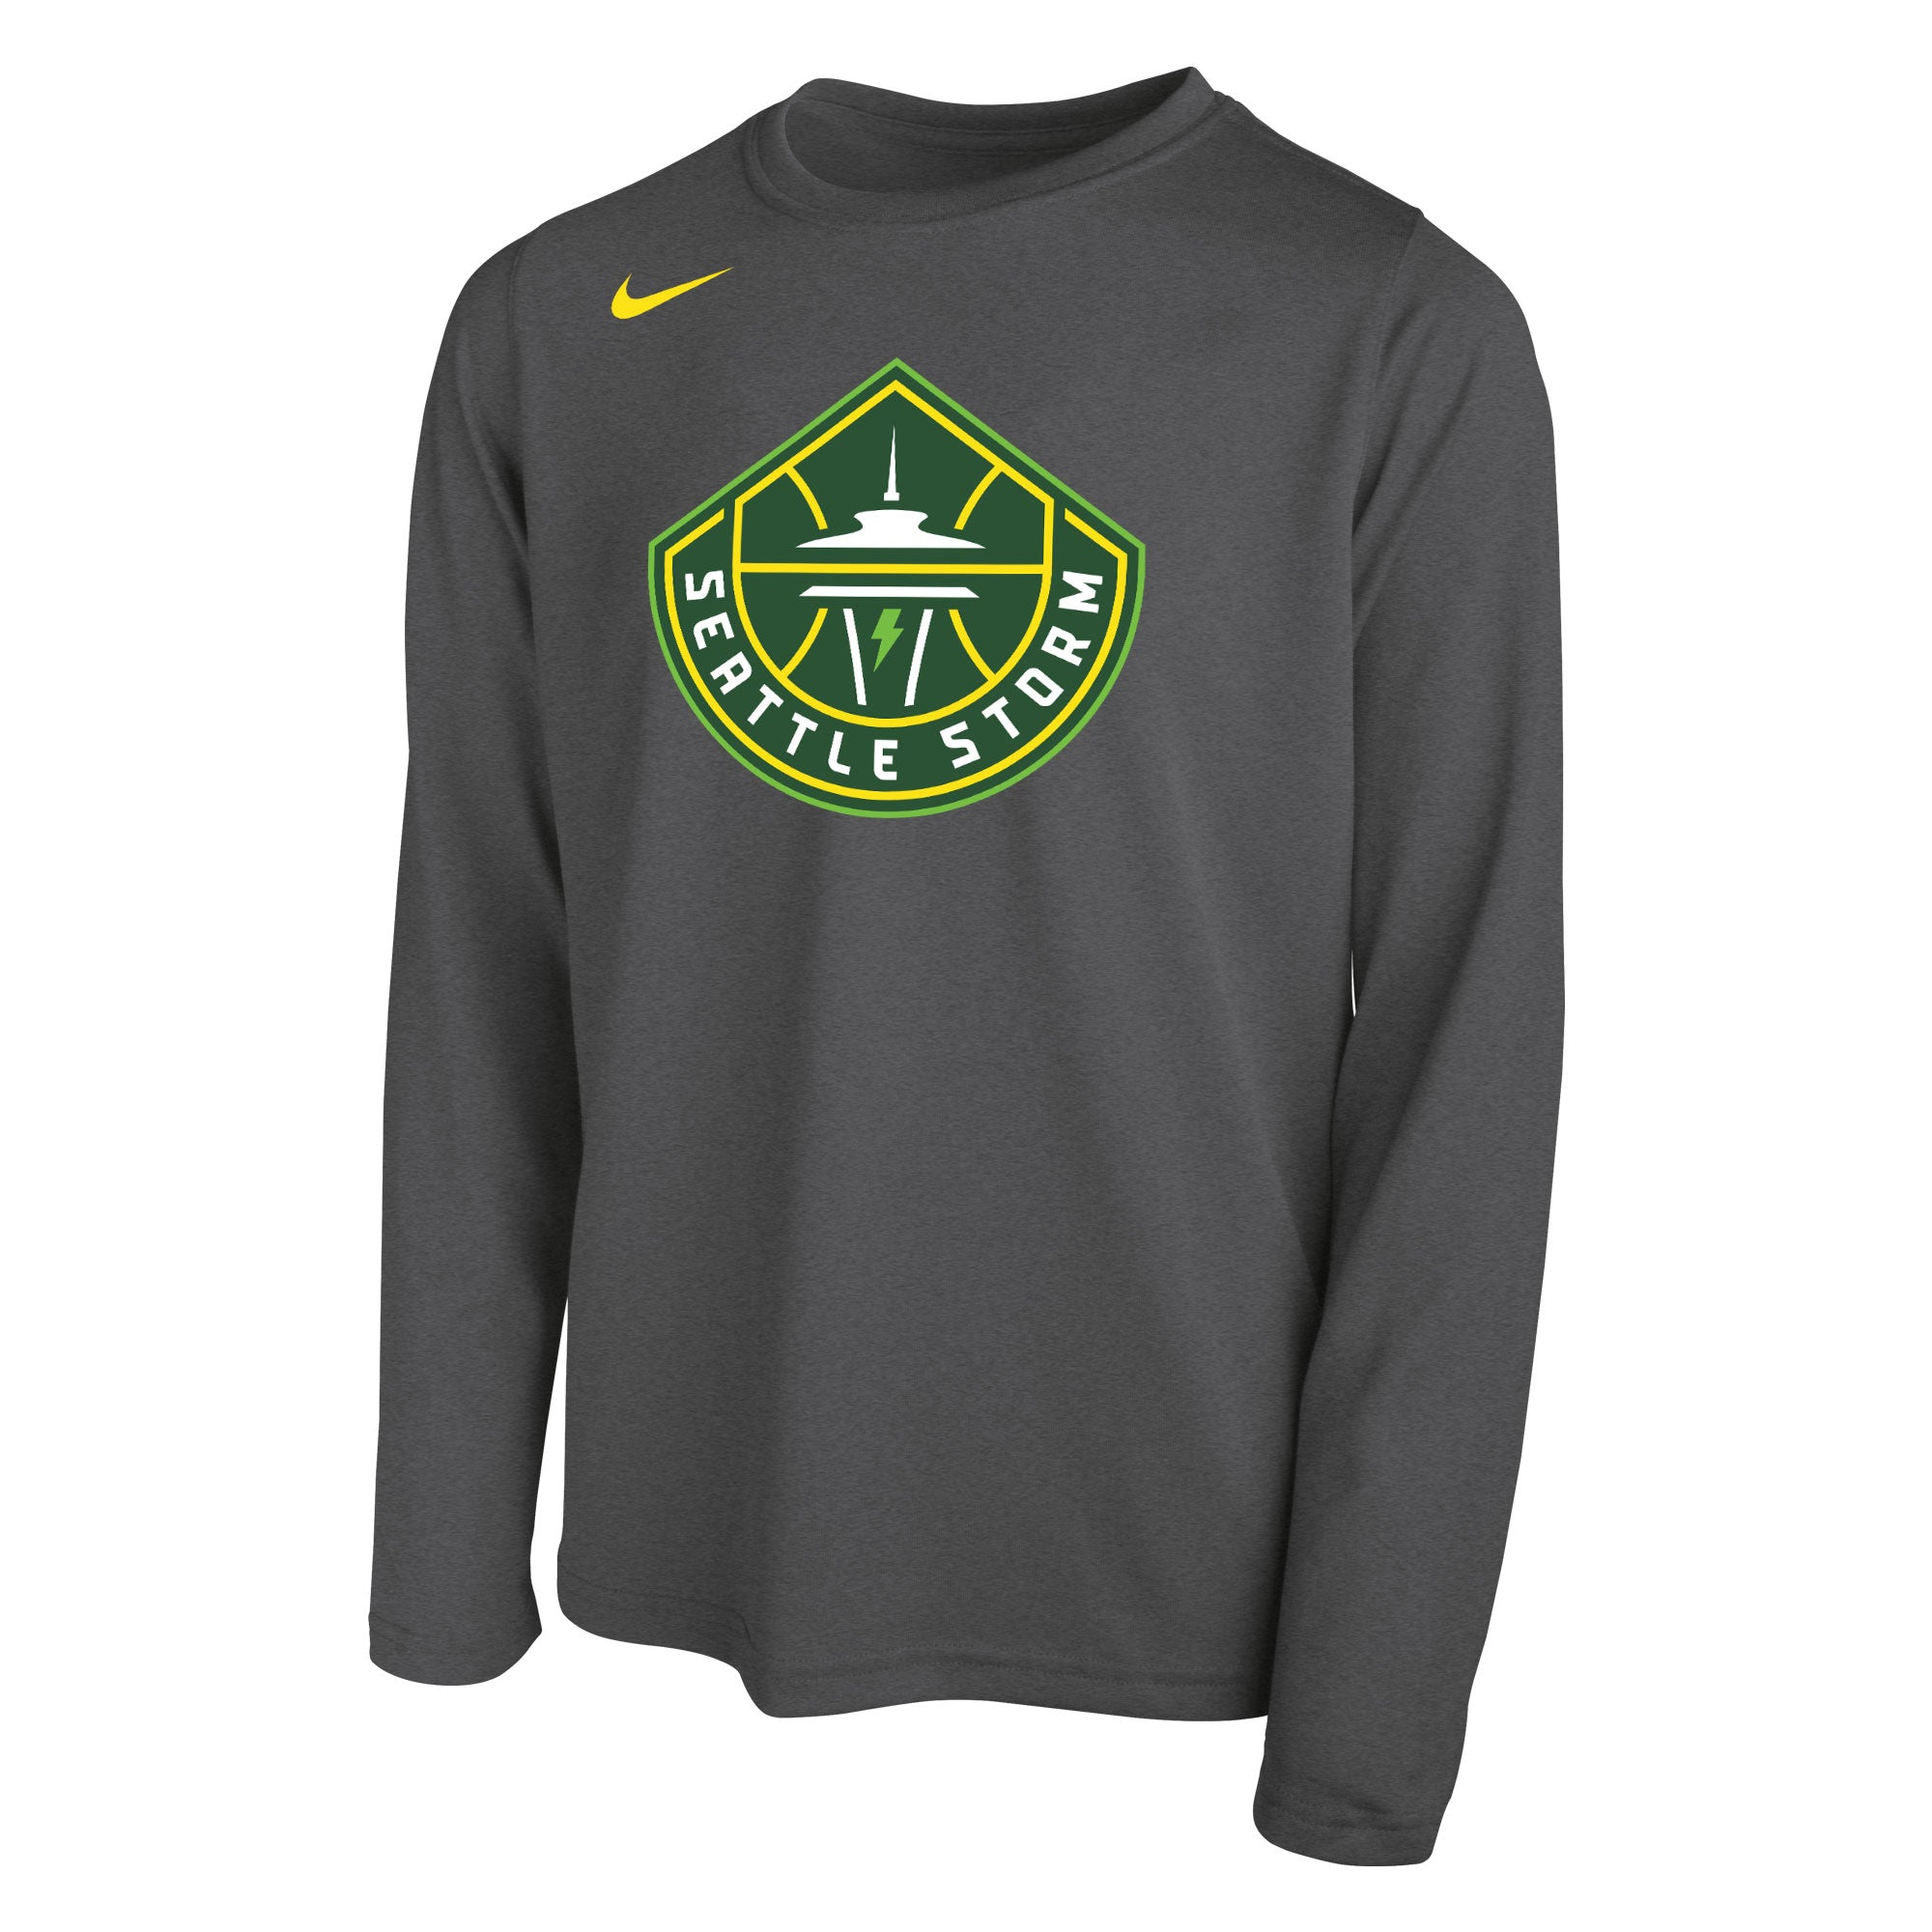 Youth Dri-fit Global Long Sleeve